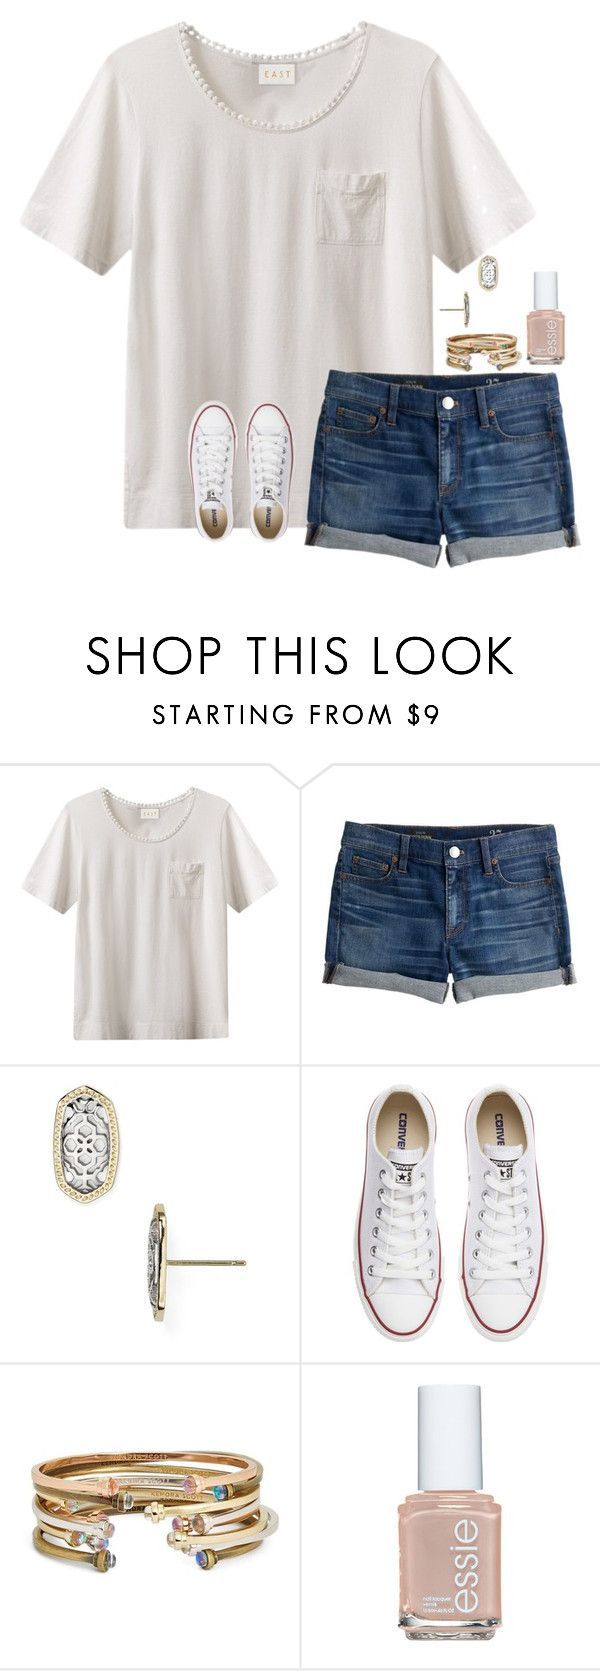 """day 2: last day of school"" by jazmintorres1 ❤ liked on Polyvore featuring EAST, J.Crew, Kendra Scott, Converse, Essie and schoolsoutmadiandashe"